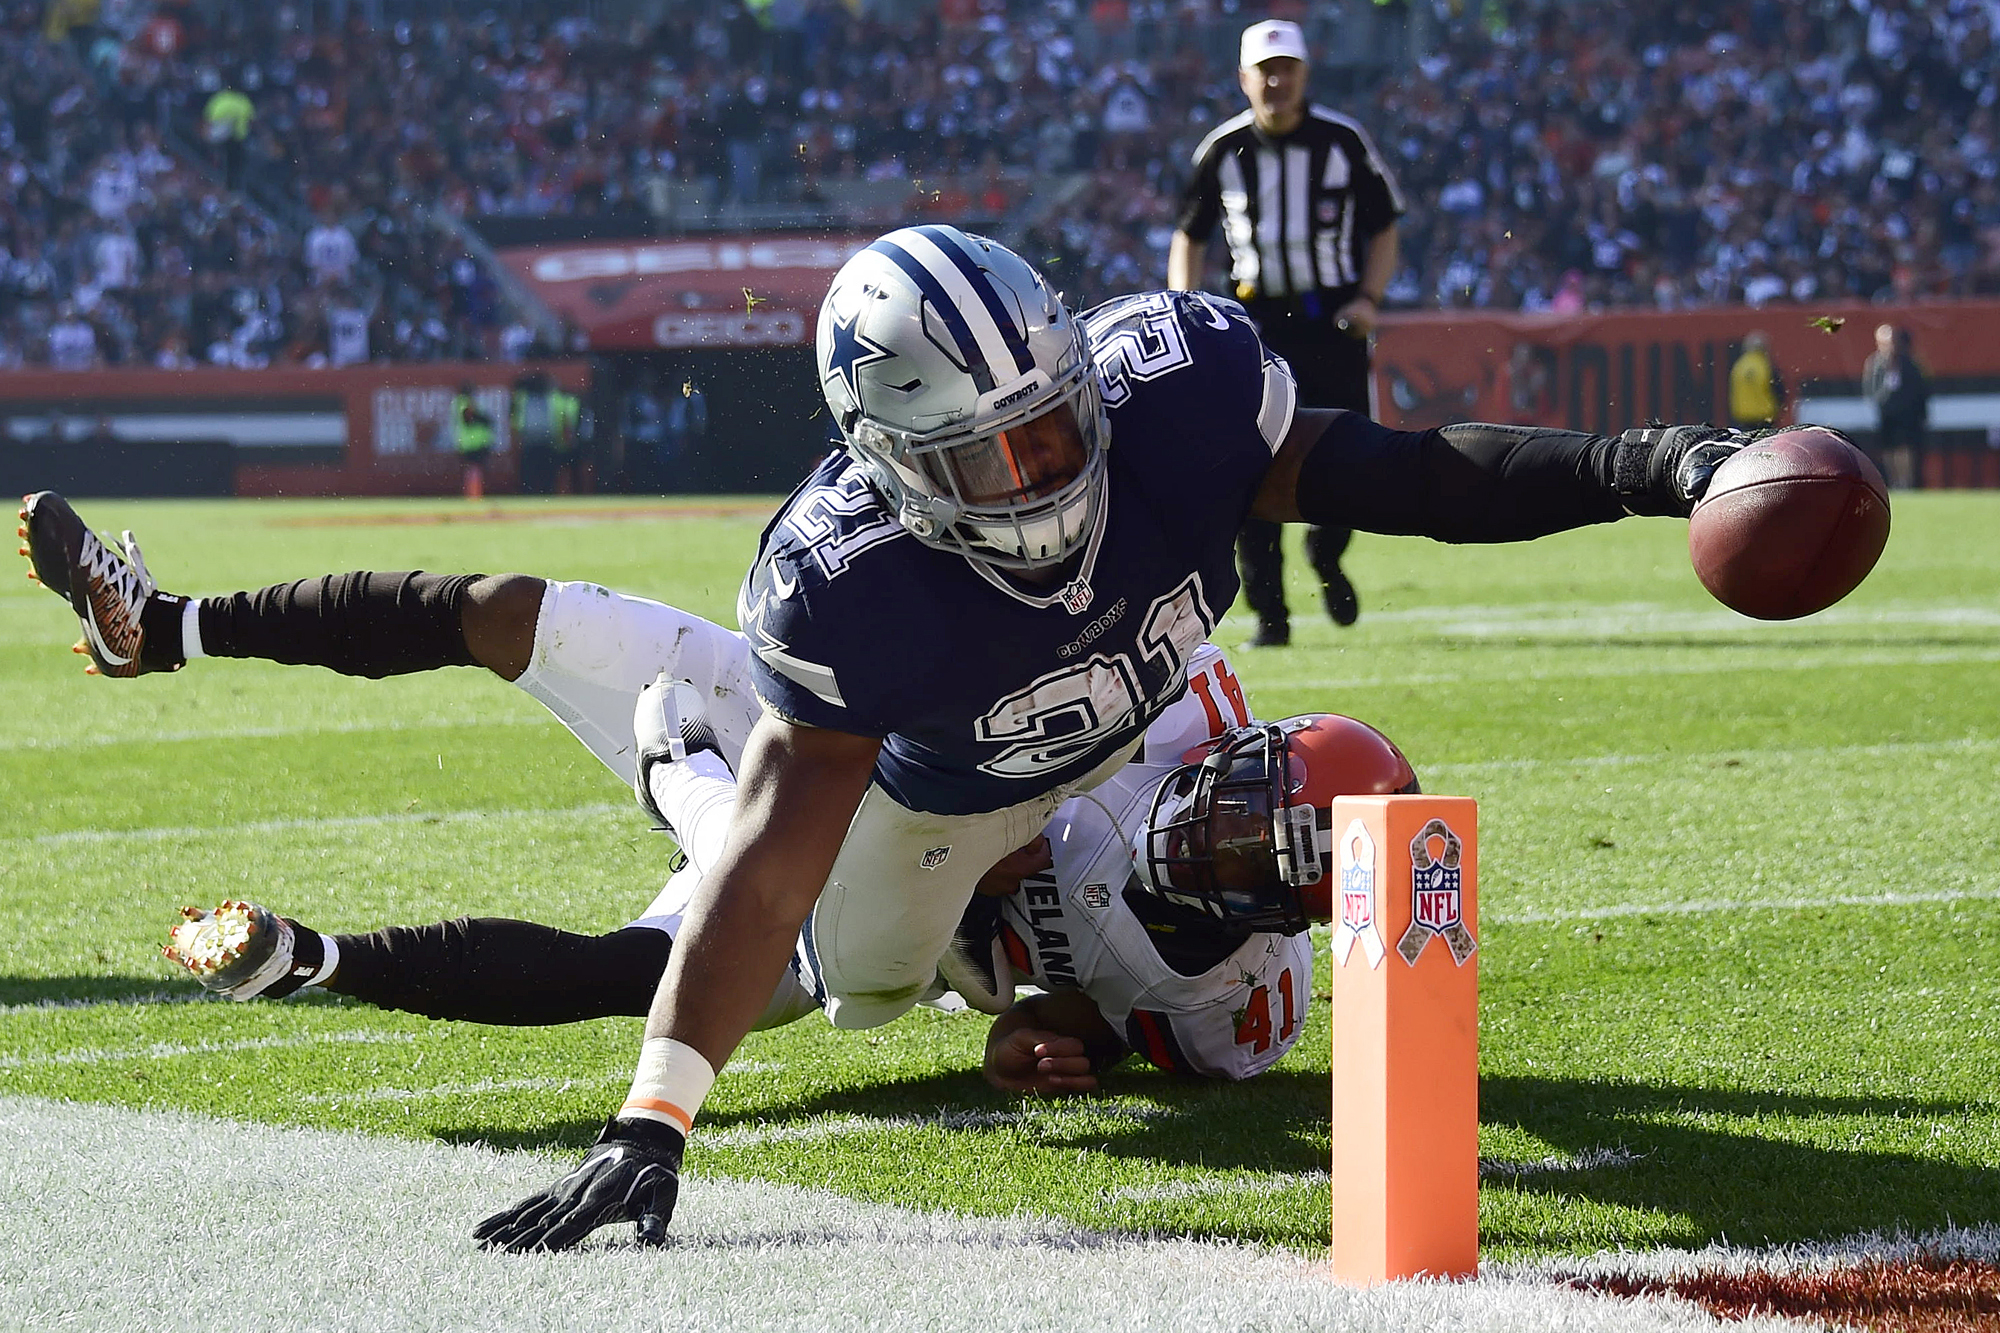 Ezekiel Elliott #21 of the Dallas Cowboys dives for a 10 yard touchdown in the first half against the Cleveland Browns at FirstEnergy Stadium on November 6, 2016 in Cleveland, Ohio.